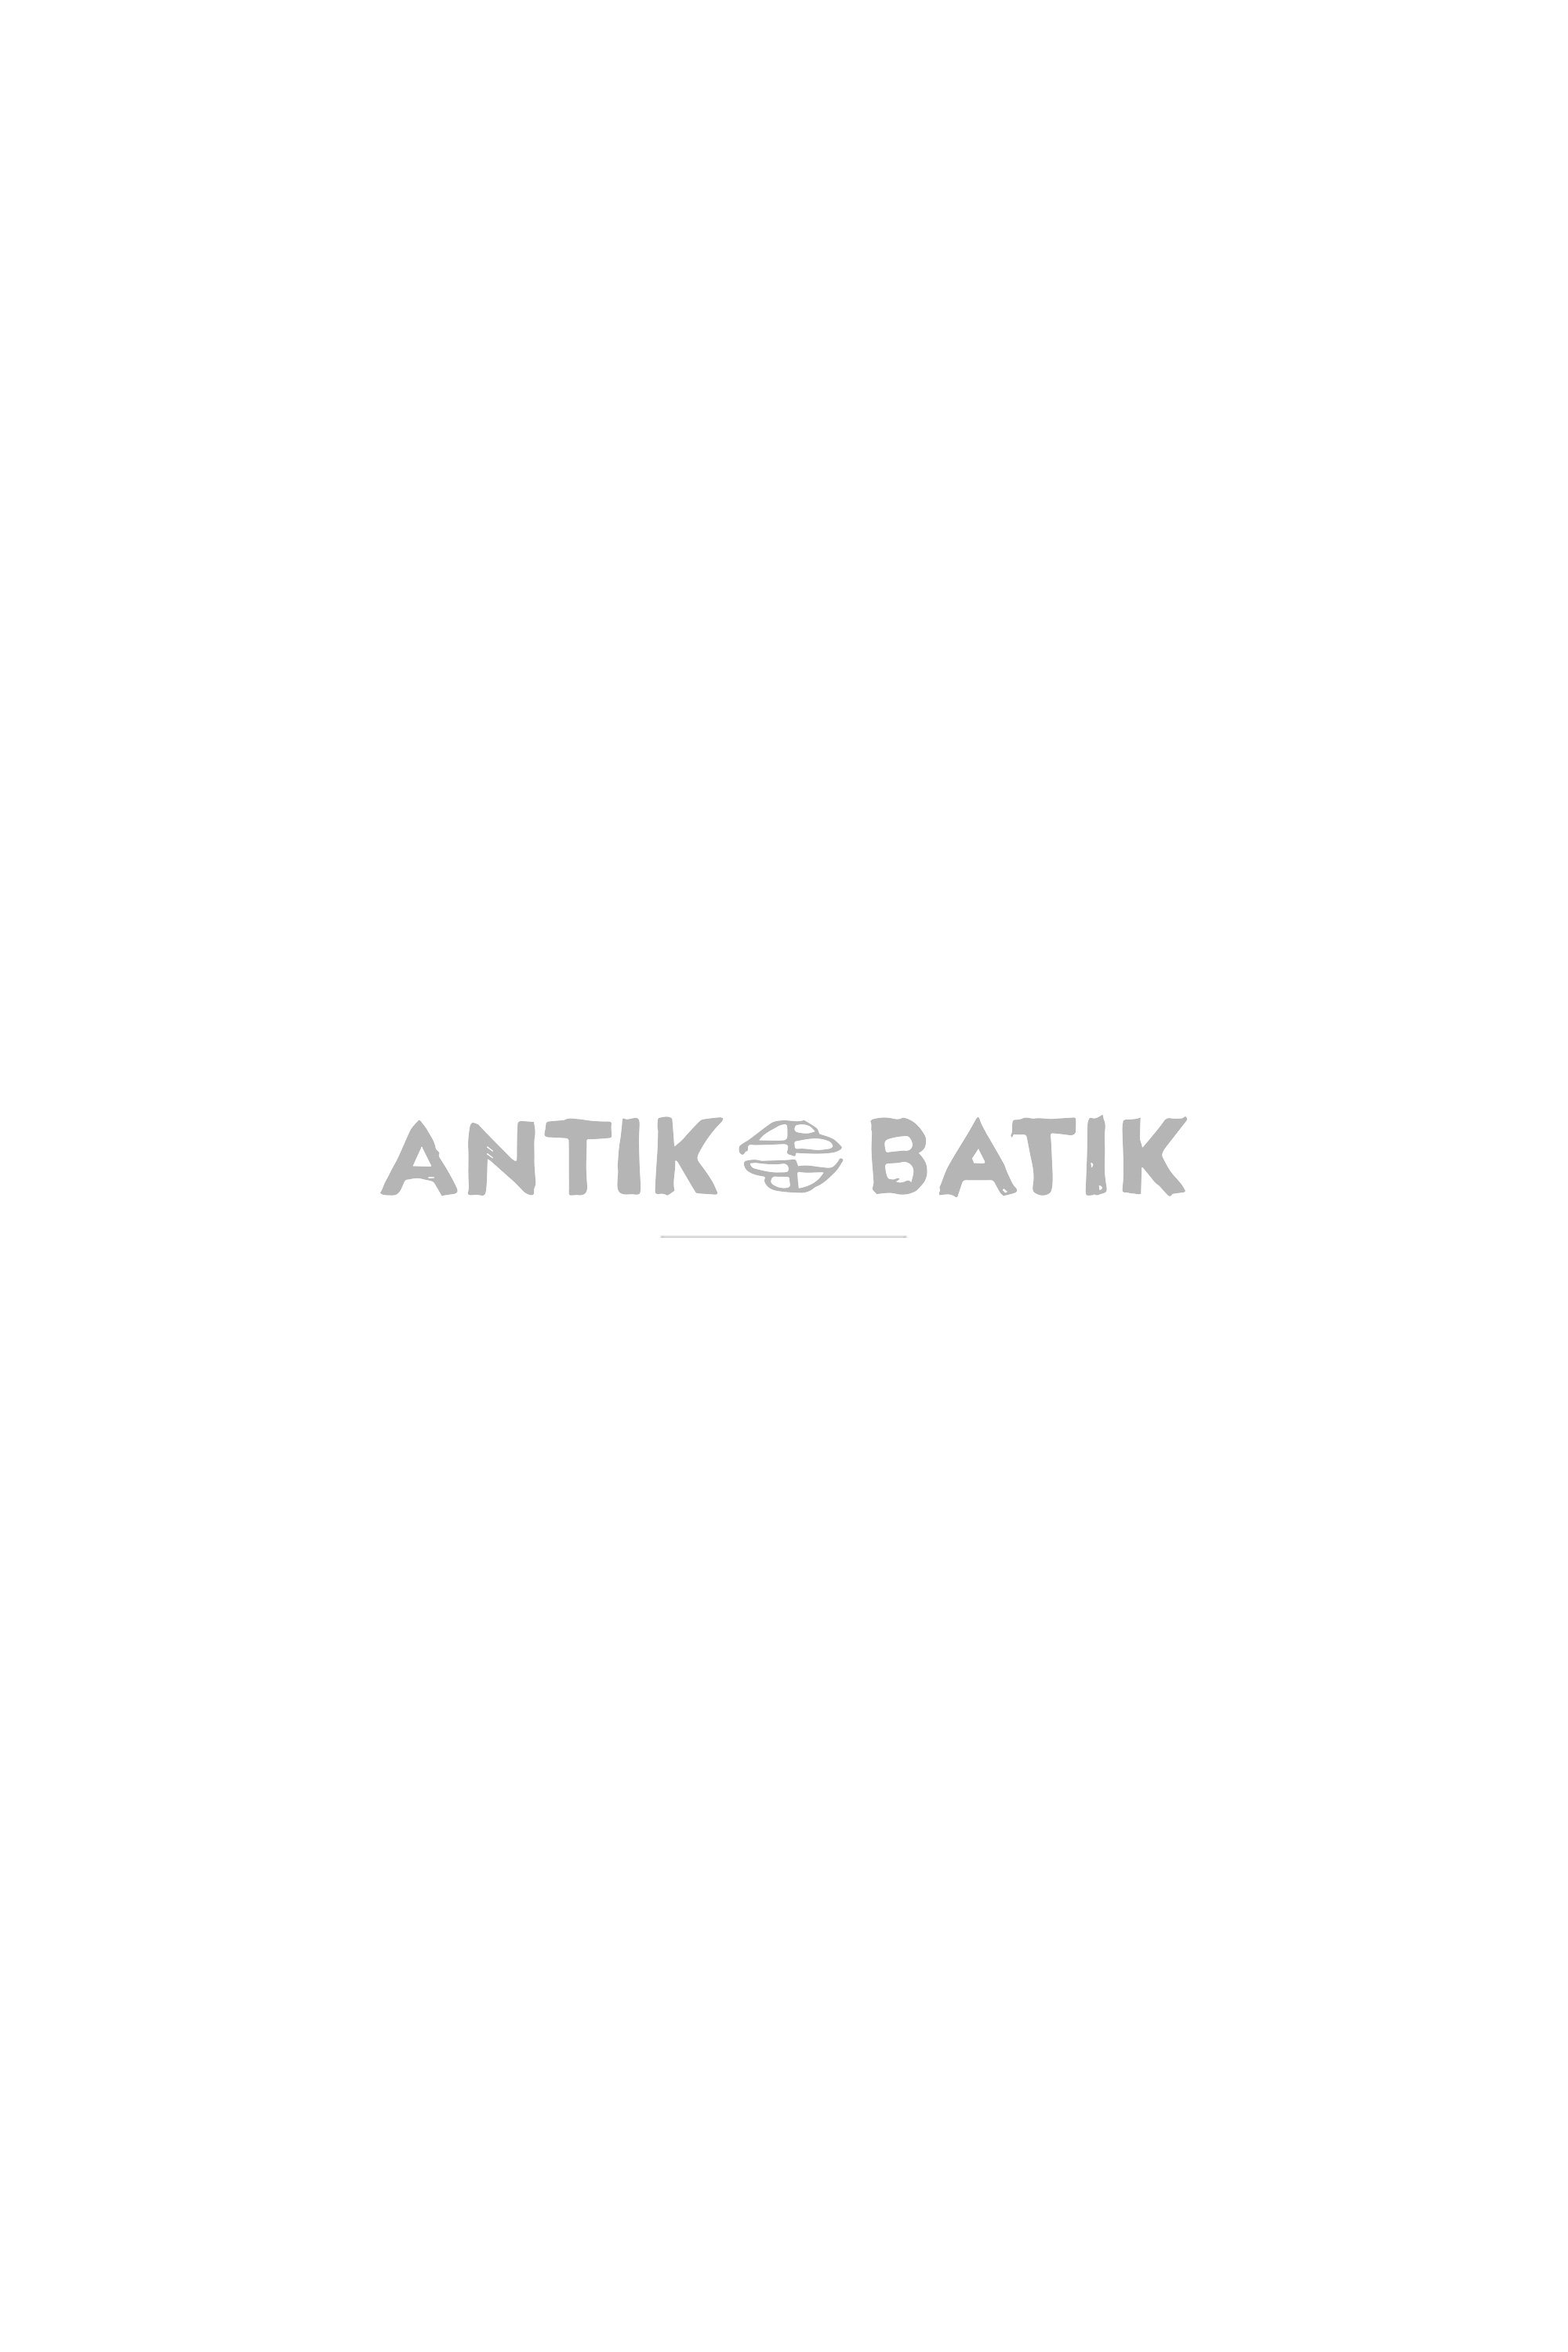 Antikbatik Ligo Leather Round Bag - White